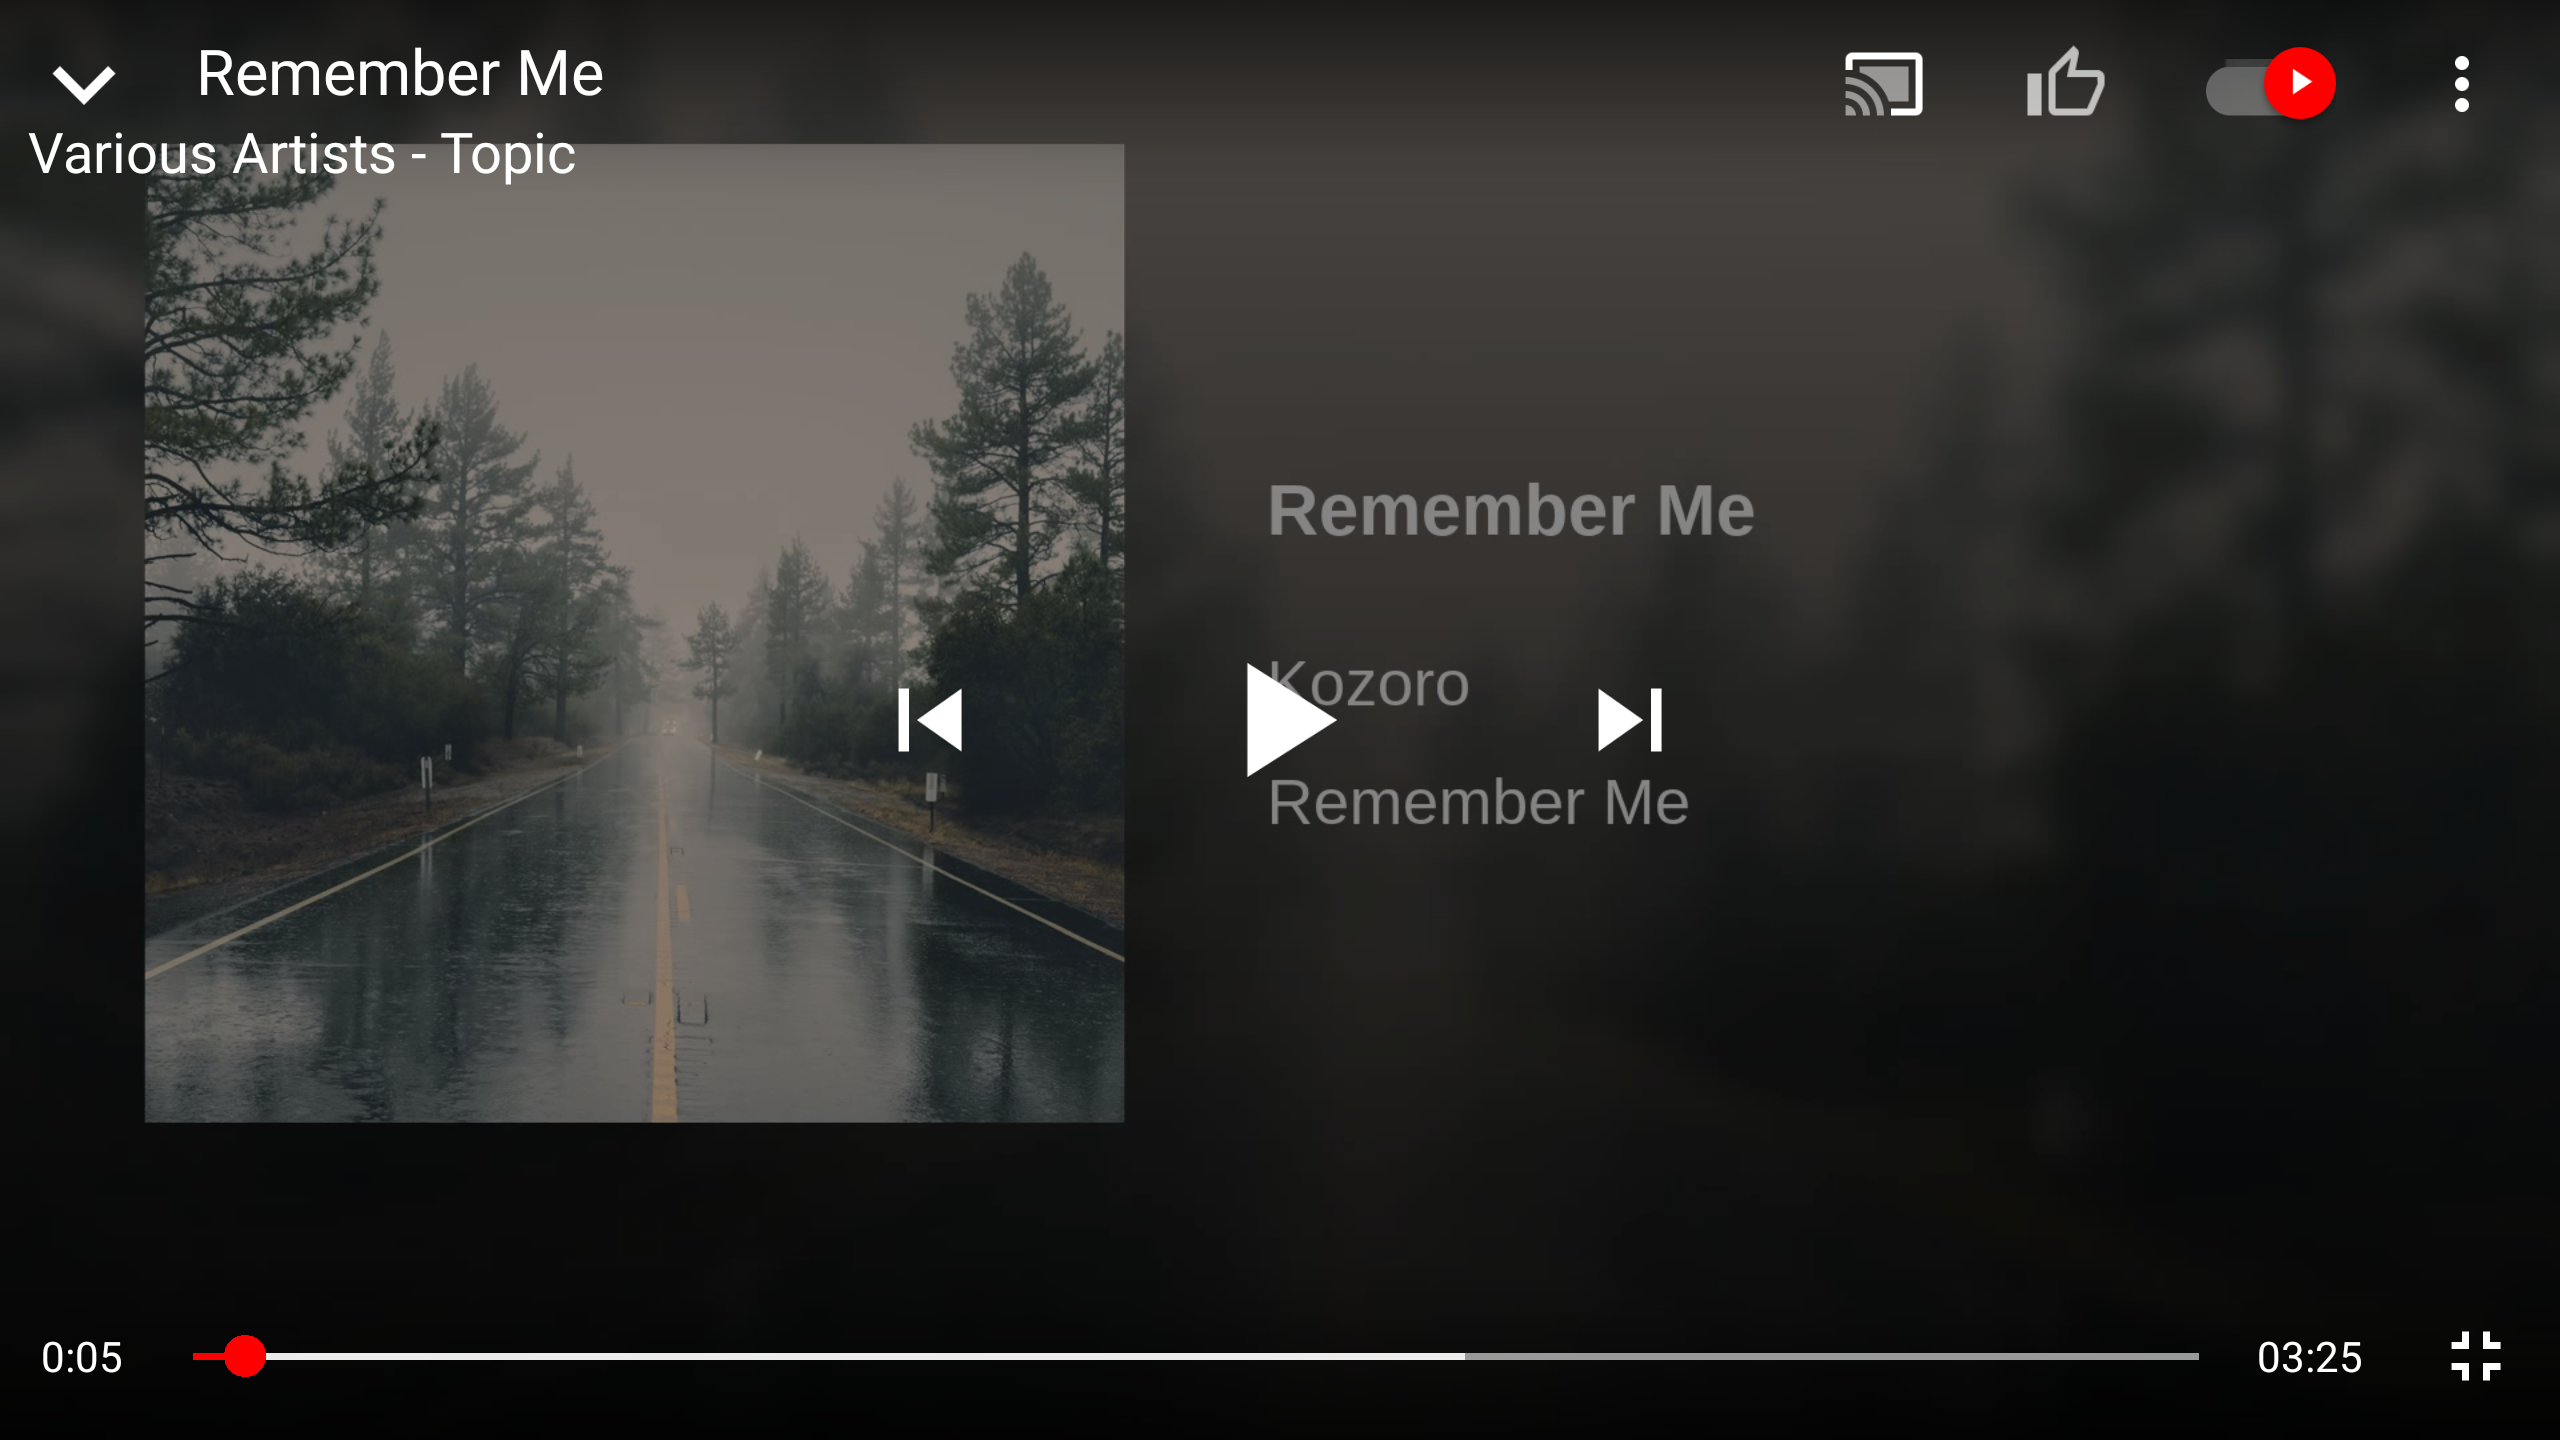 Youtube Music App to get New Design